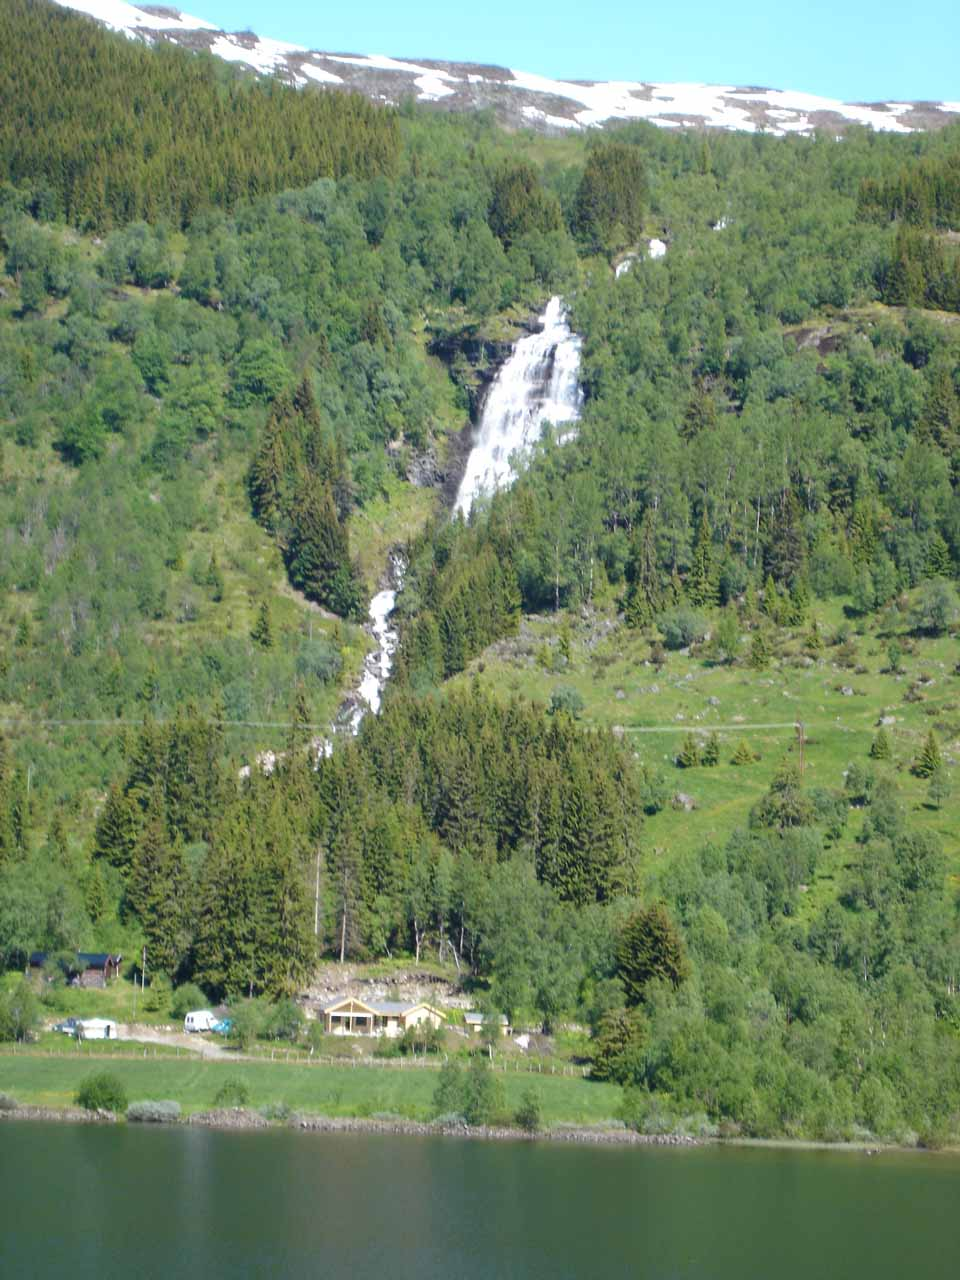 Probably around 15 minutes into our drive on the Rv5 from Sogndalsfjøra, Julie spotted Svedalsfossen across Dalavatnet